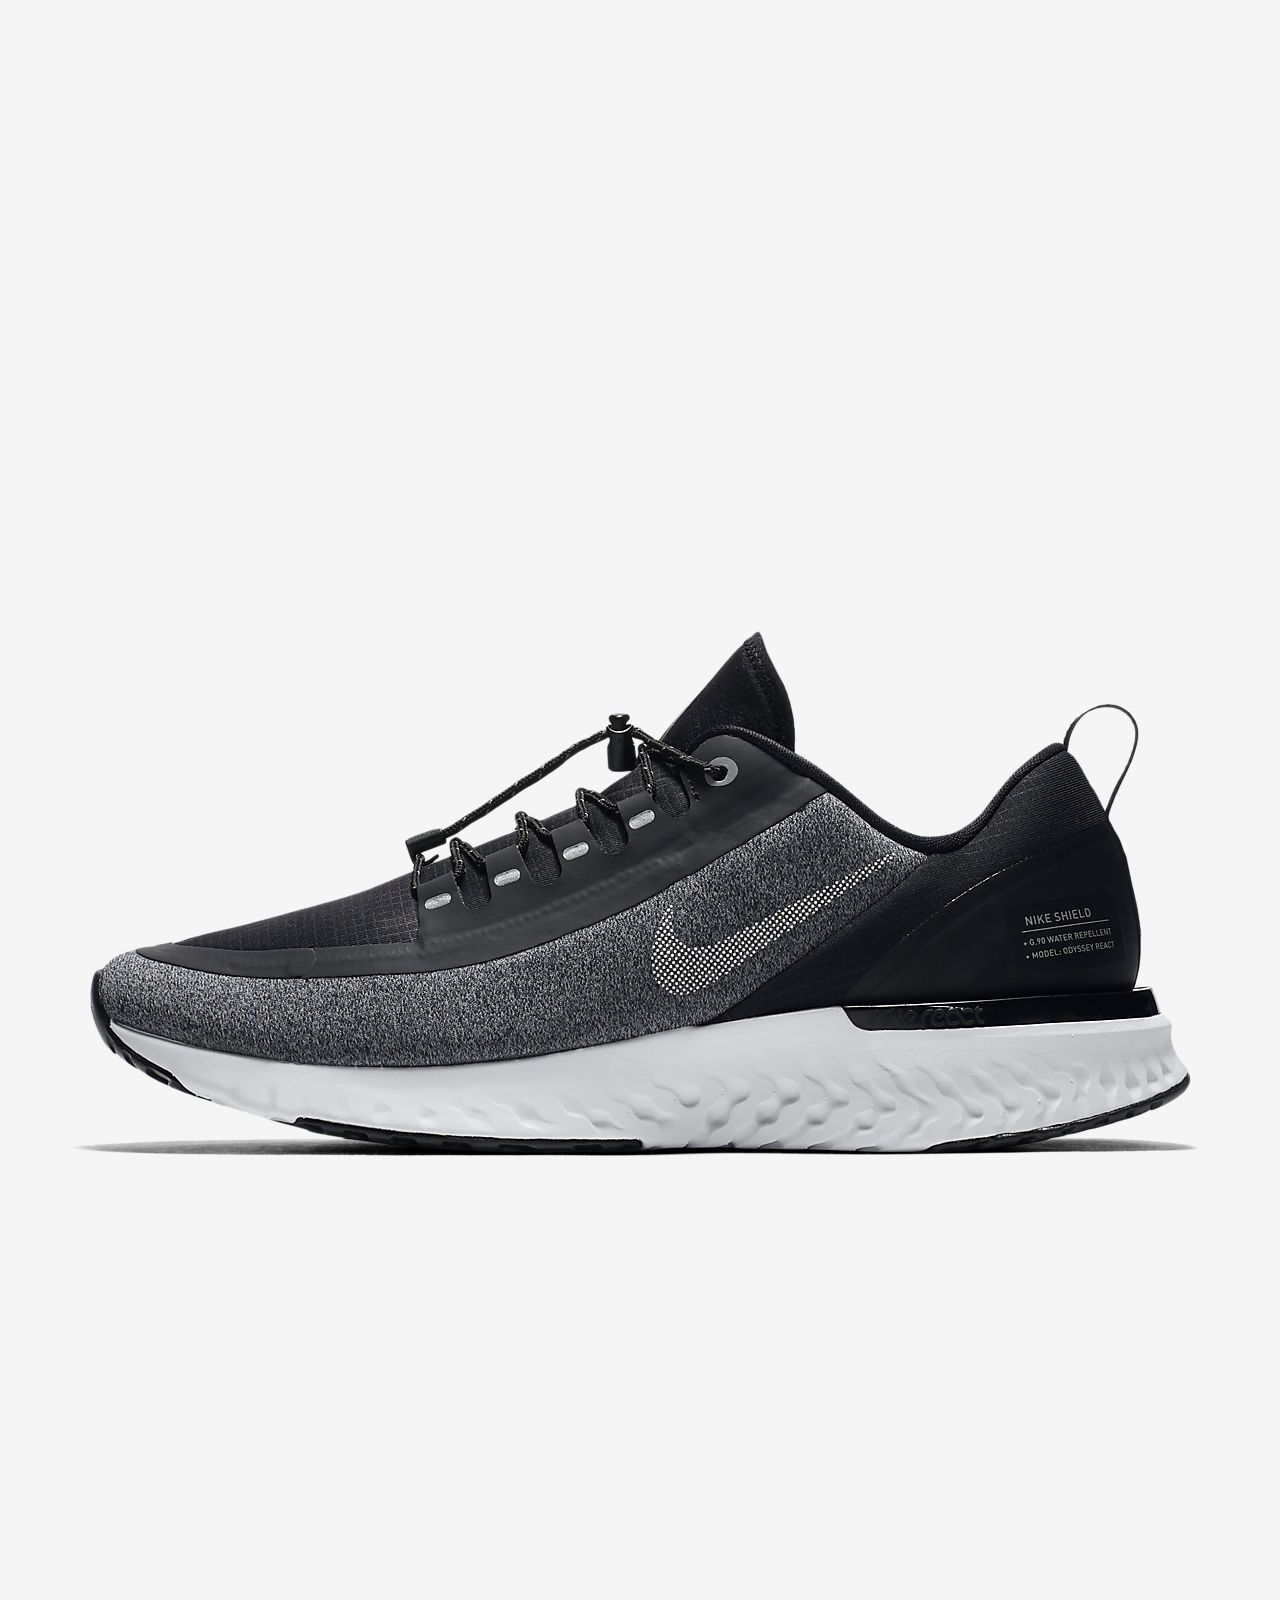 Löparsko Nike Odyssey React Shield Water-Repellent för män